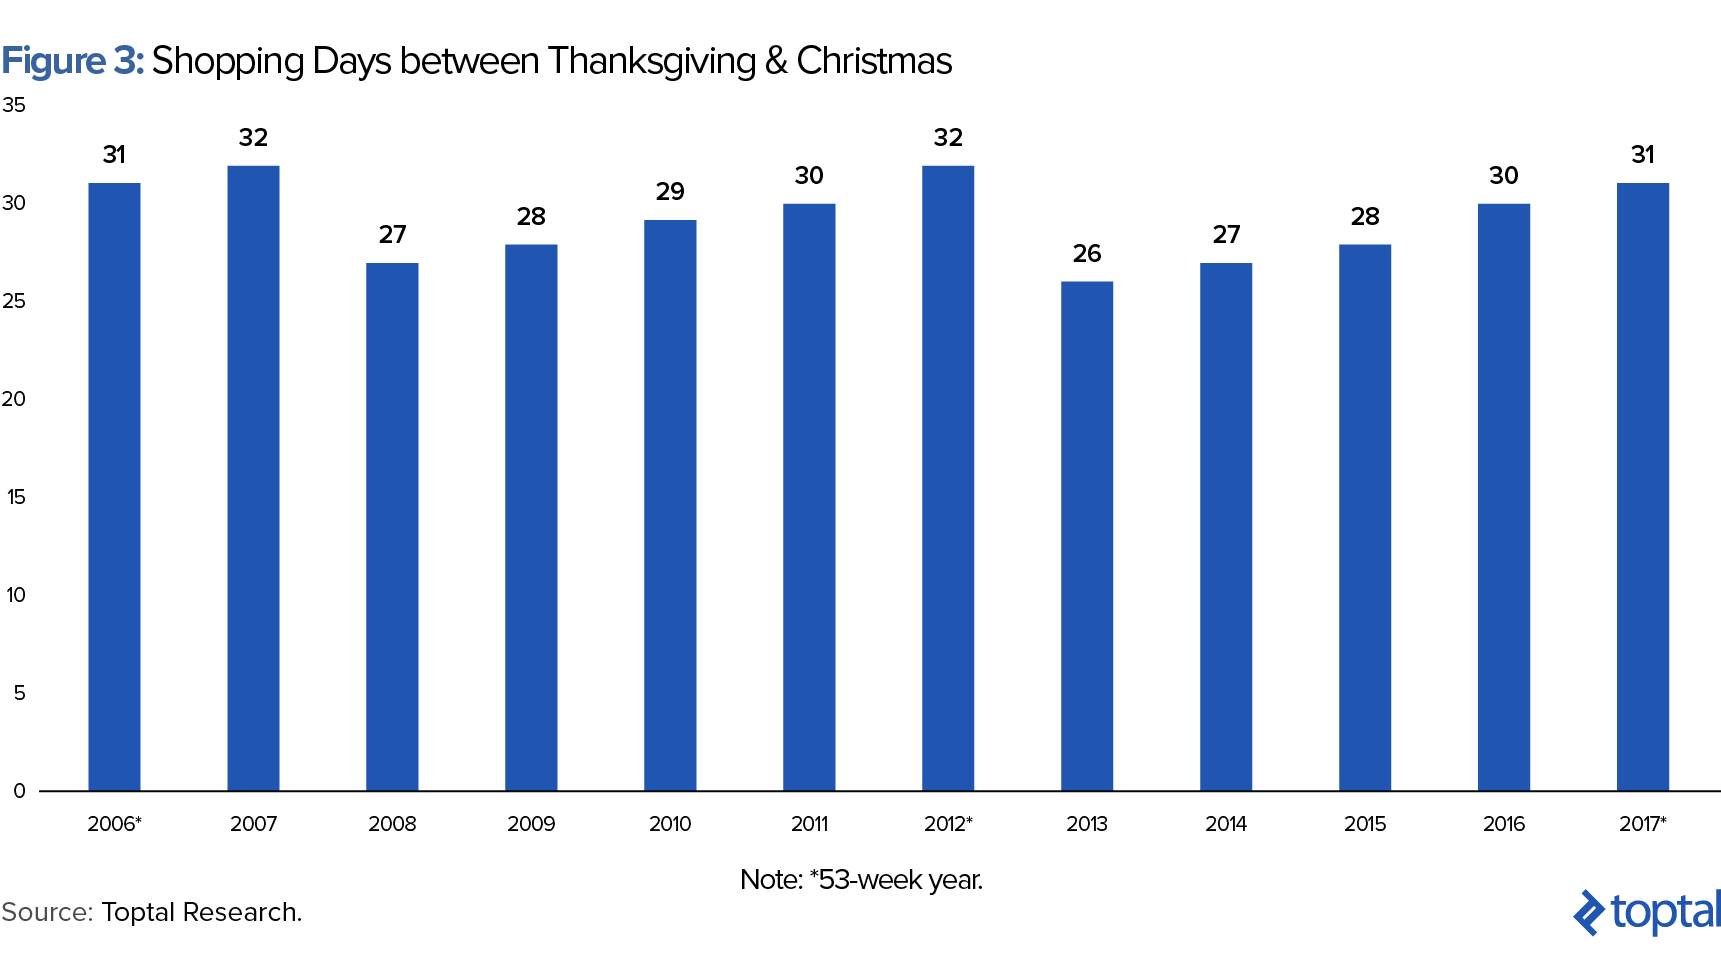 Figure 3: Shopping Days Between Thanksgiving and Christmas